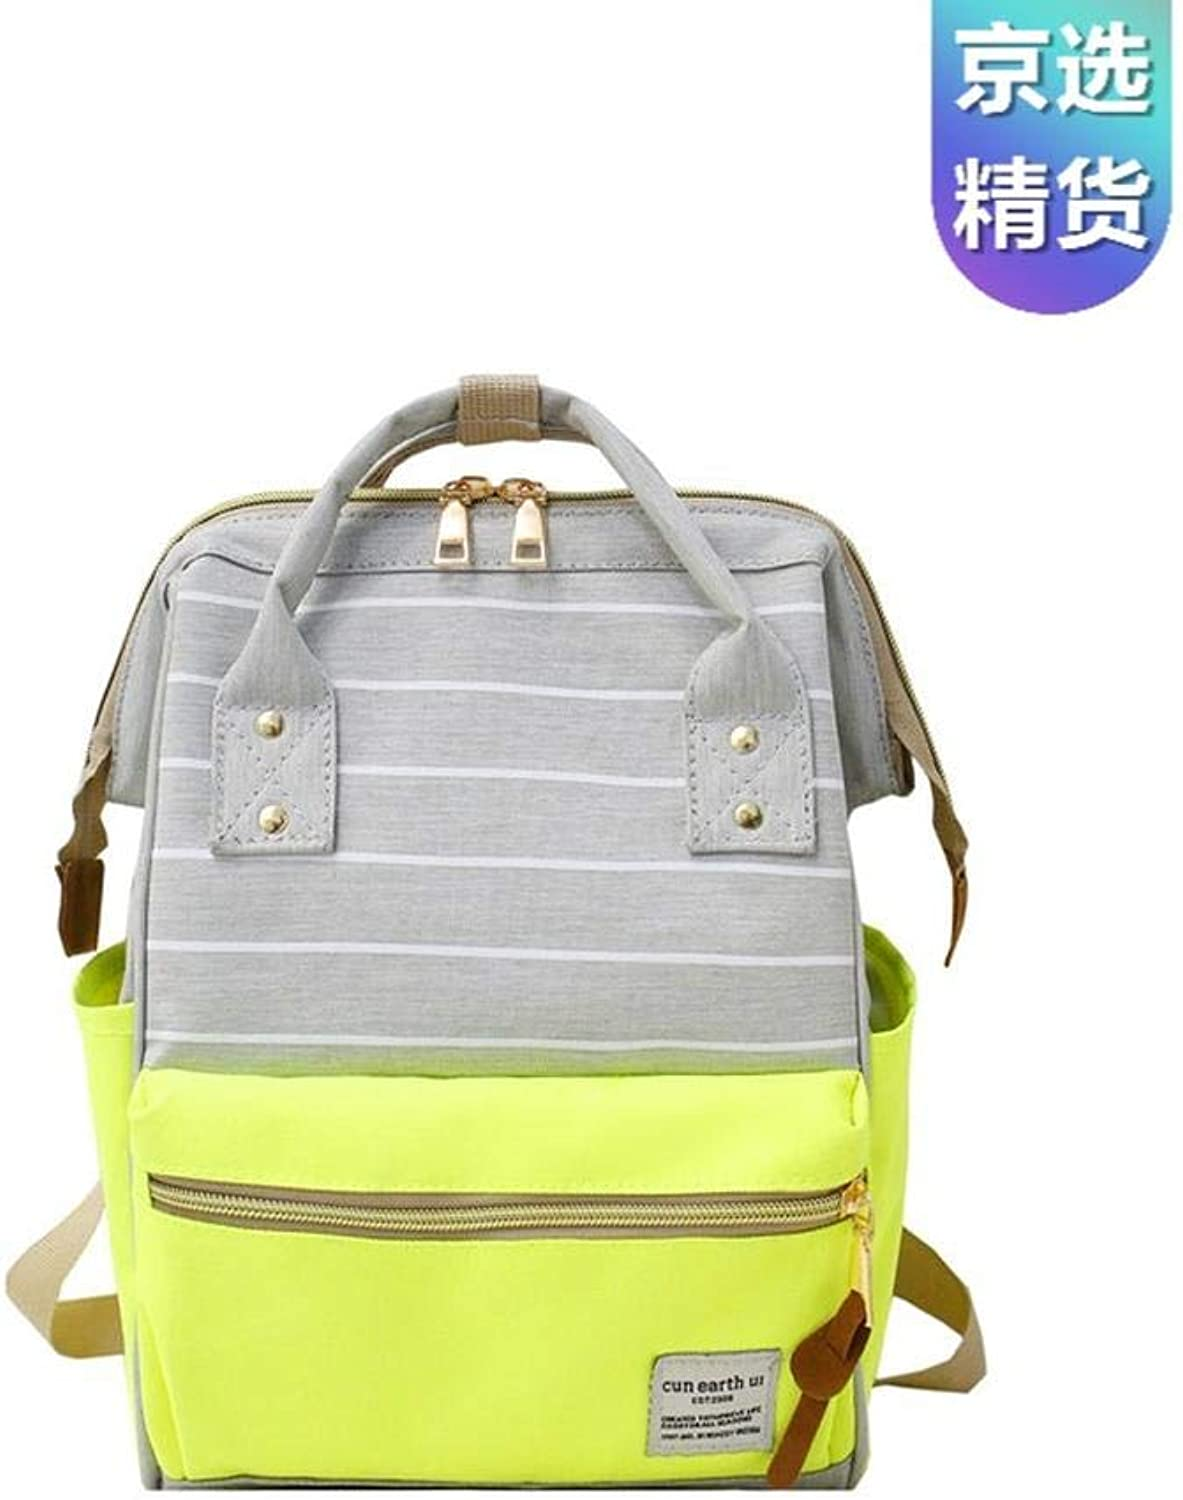 New orange Beauty Cloth yibu Rao ins Super fire Backpack Backpack Korean Street Trend Couple Casual Male and Female Students Large-Capacity School Bag Green Large